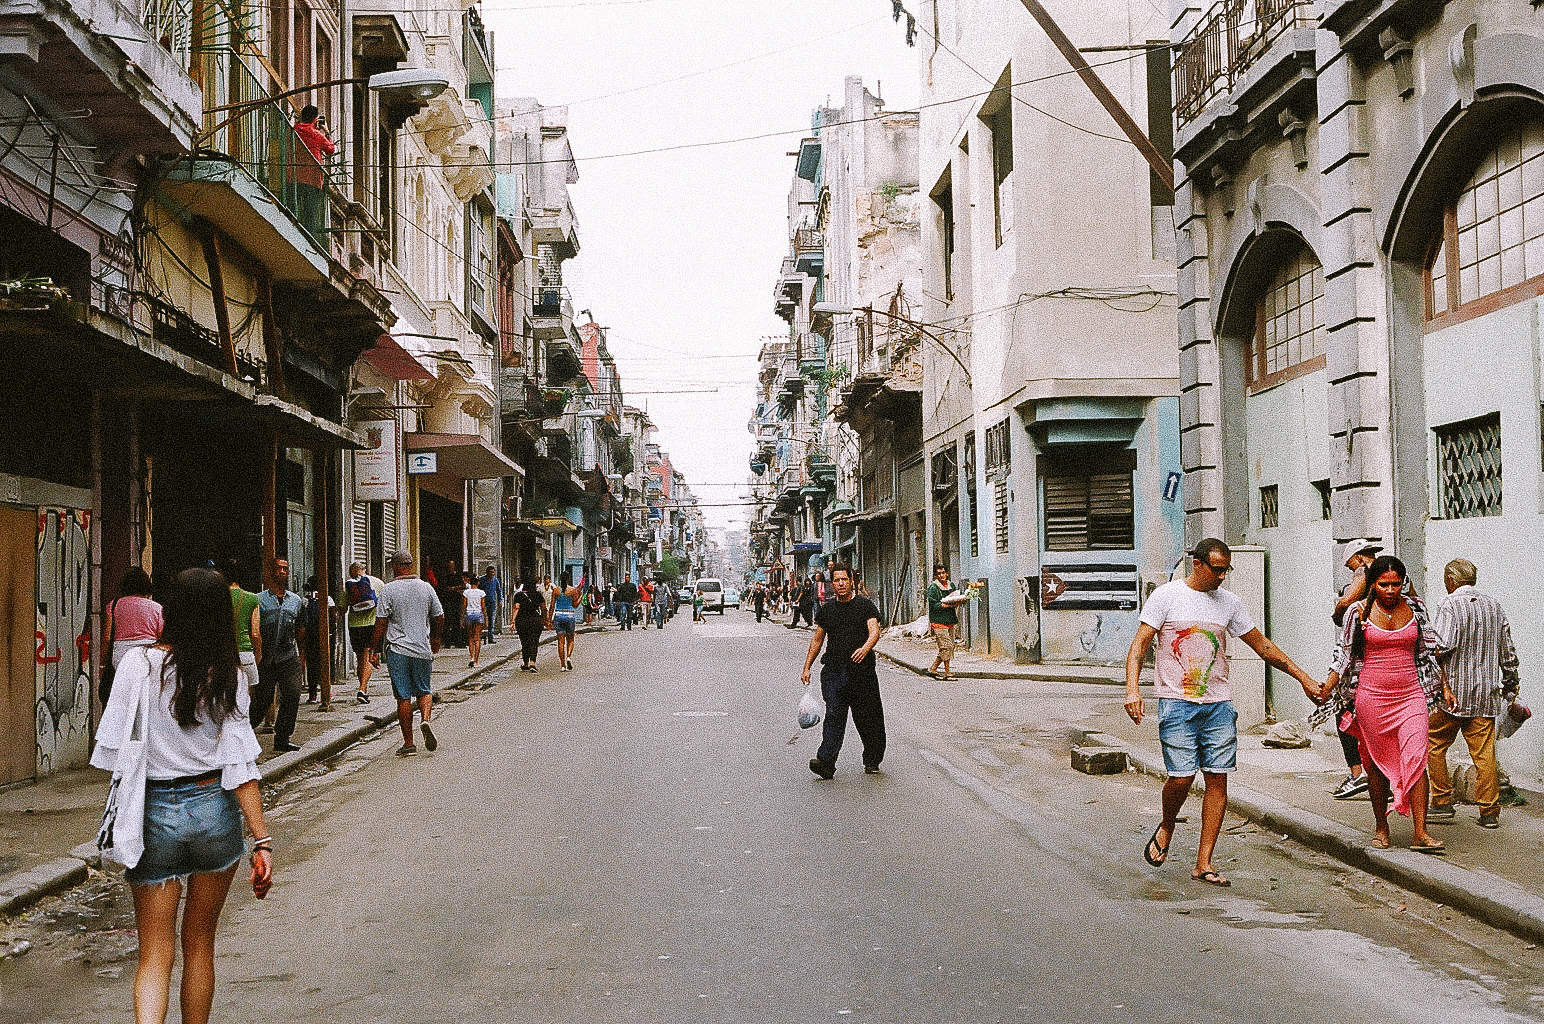 Photo by Tyler Laird for Comuna Travel